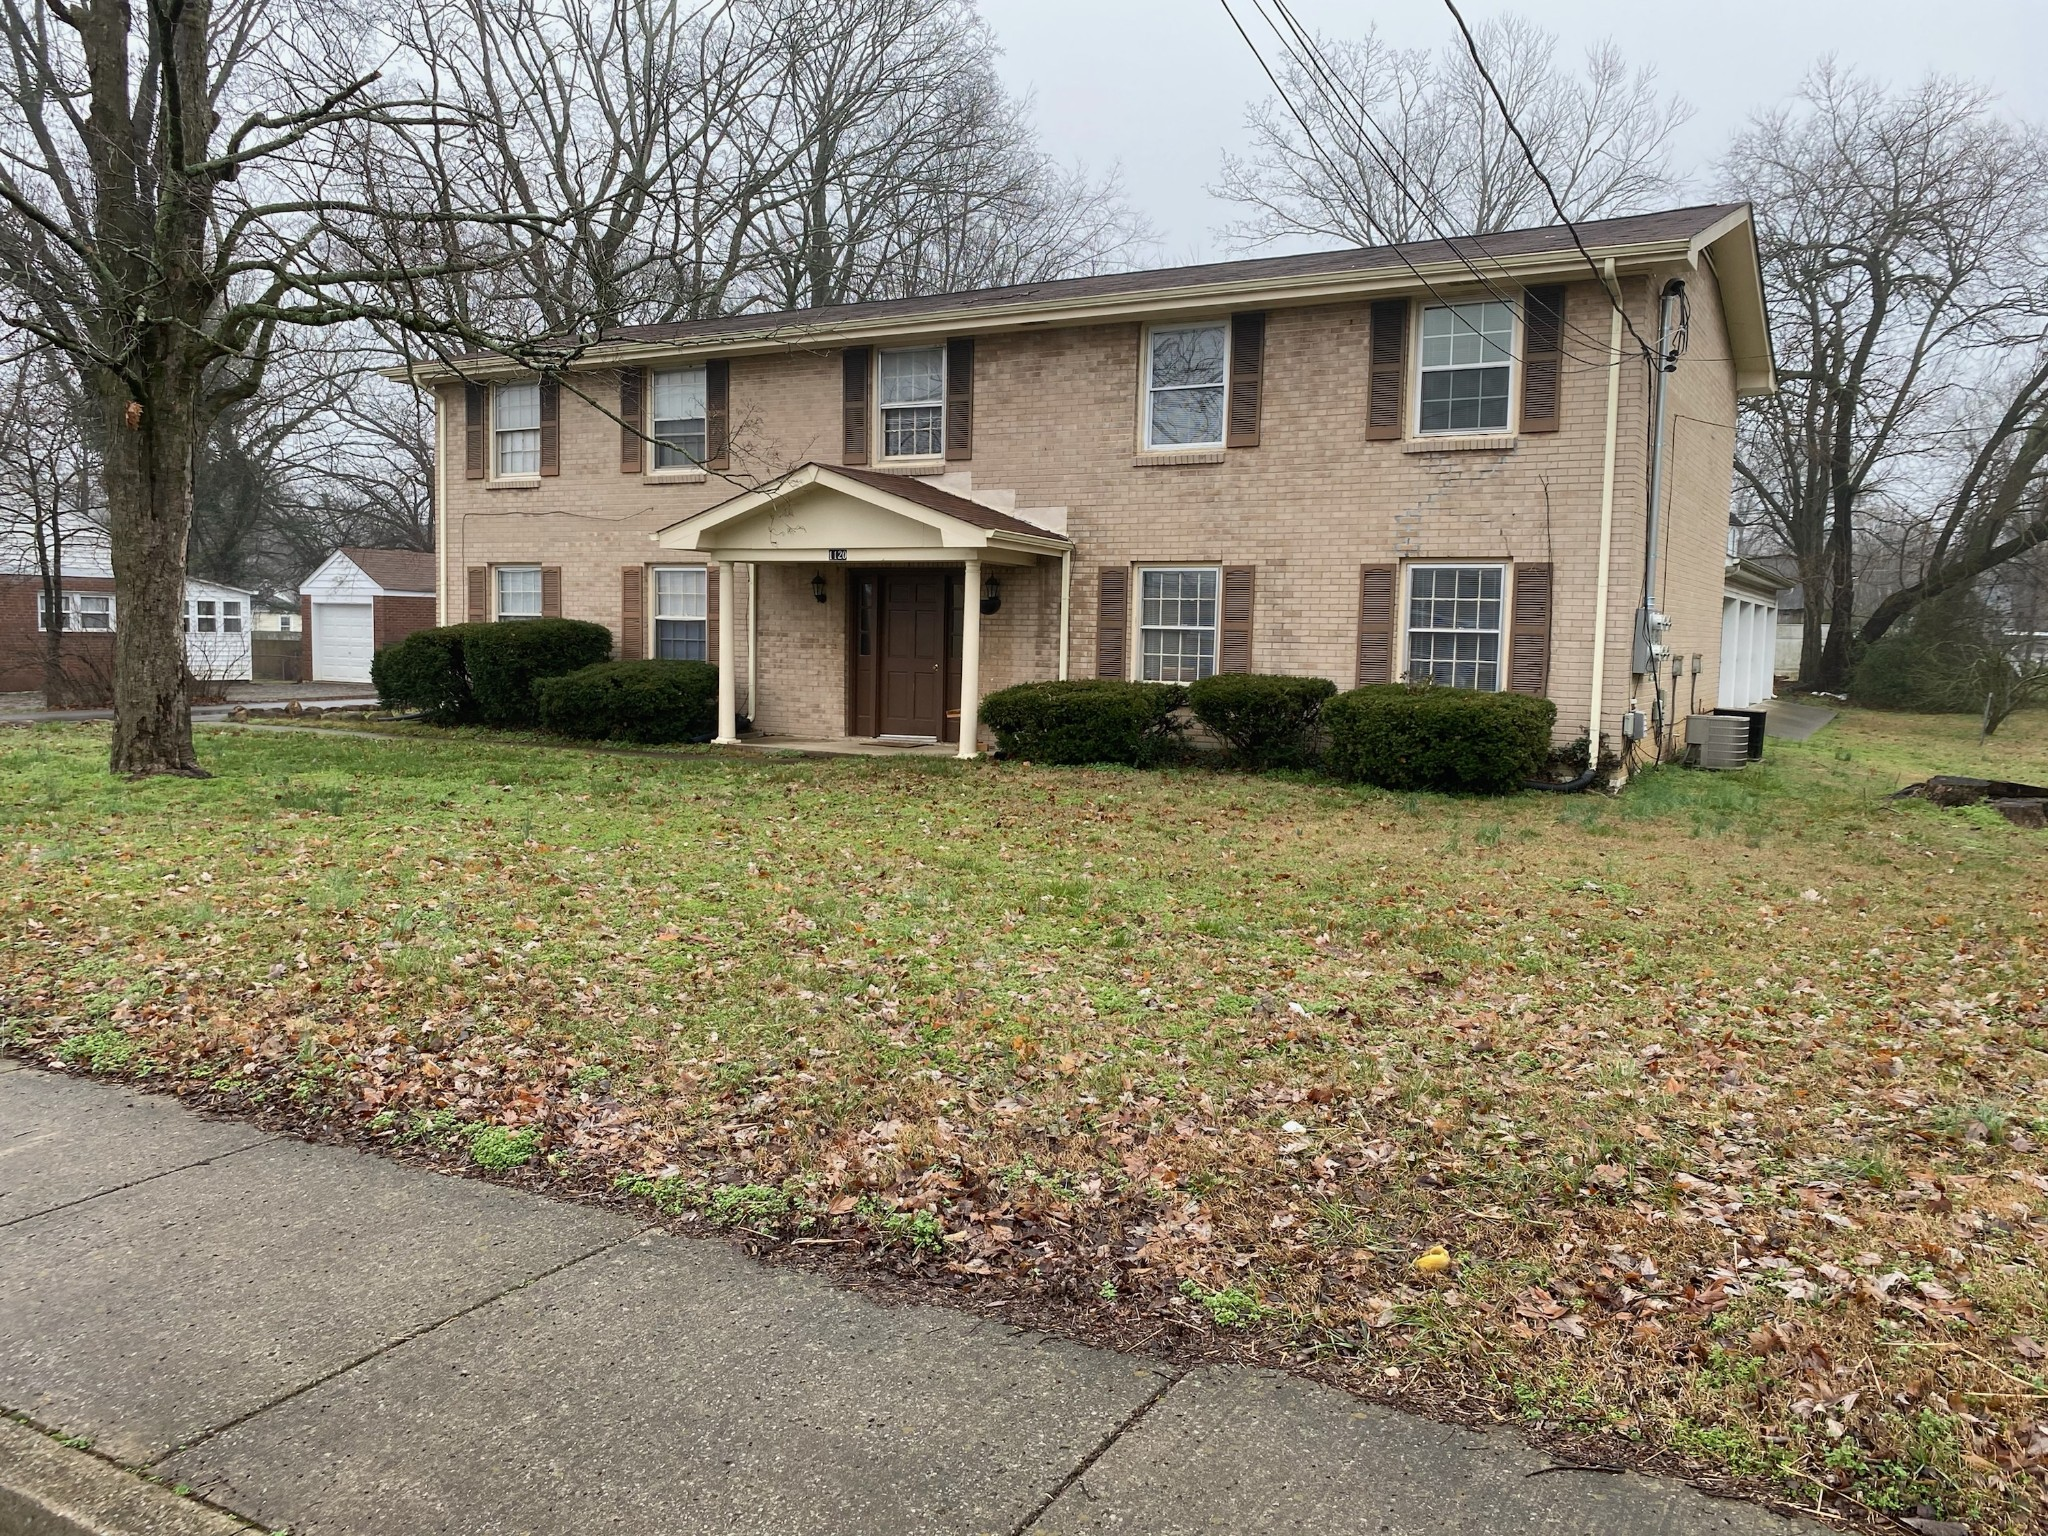 1120 N Maple ST, Murfreesboro, TN 37130 - Murfreesboro, TN real estate listing